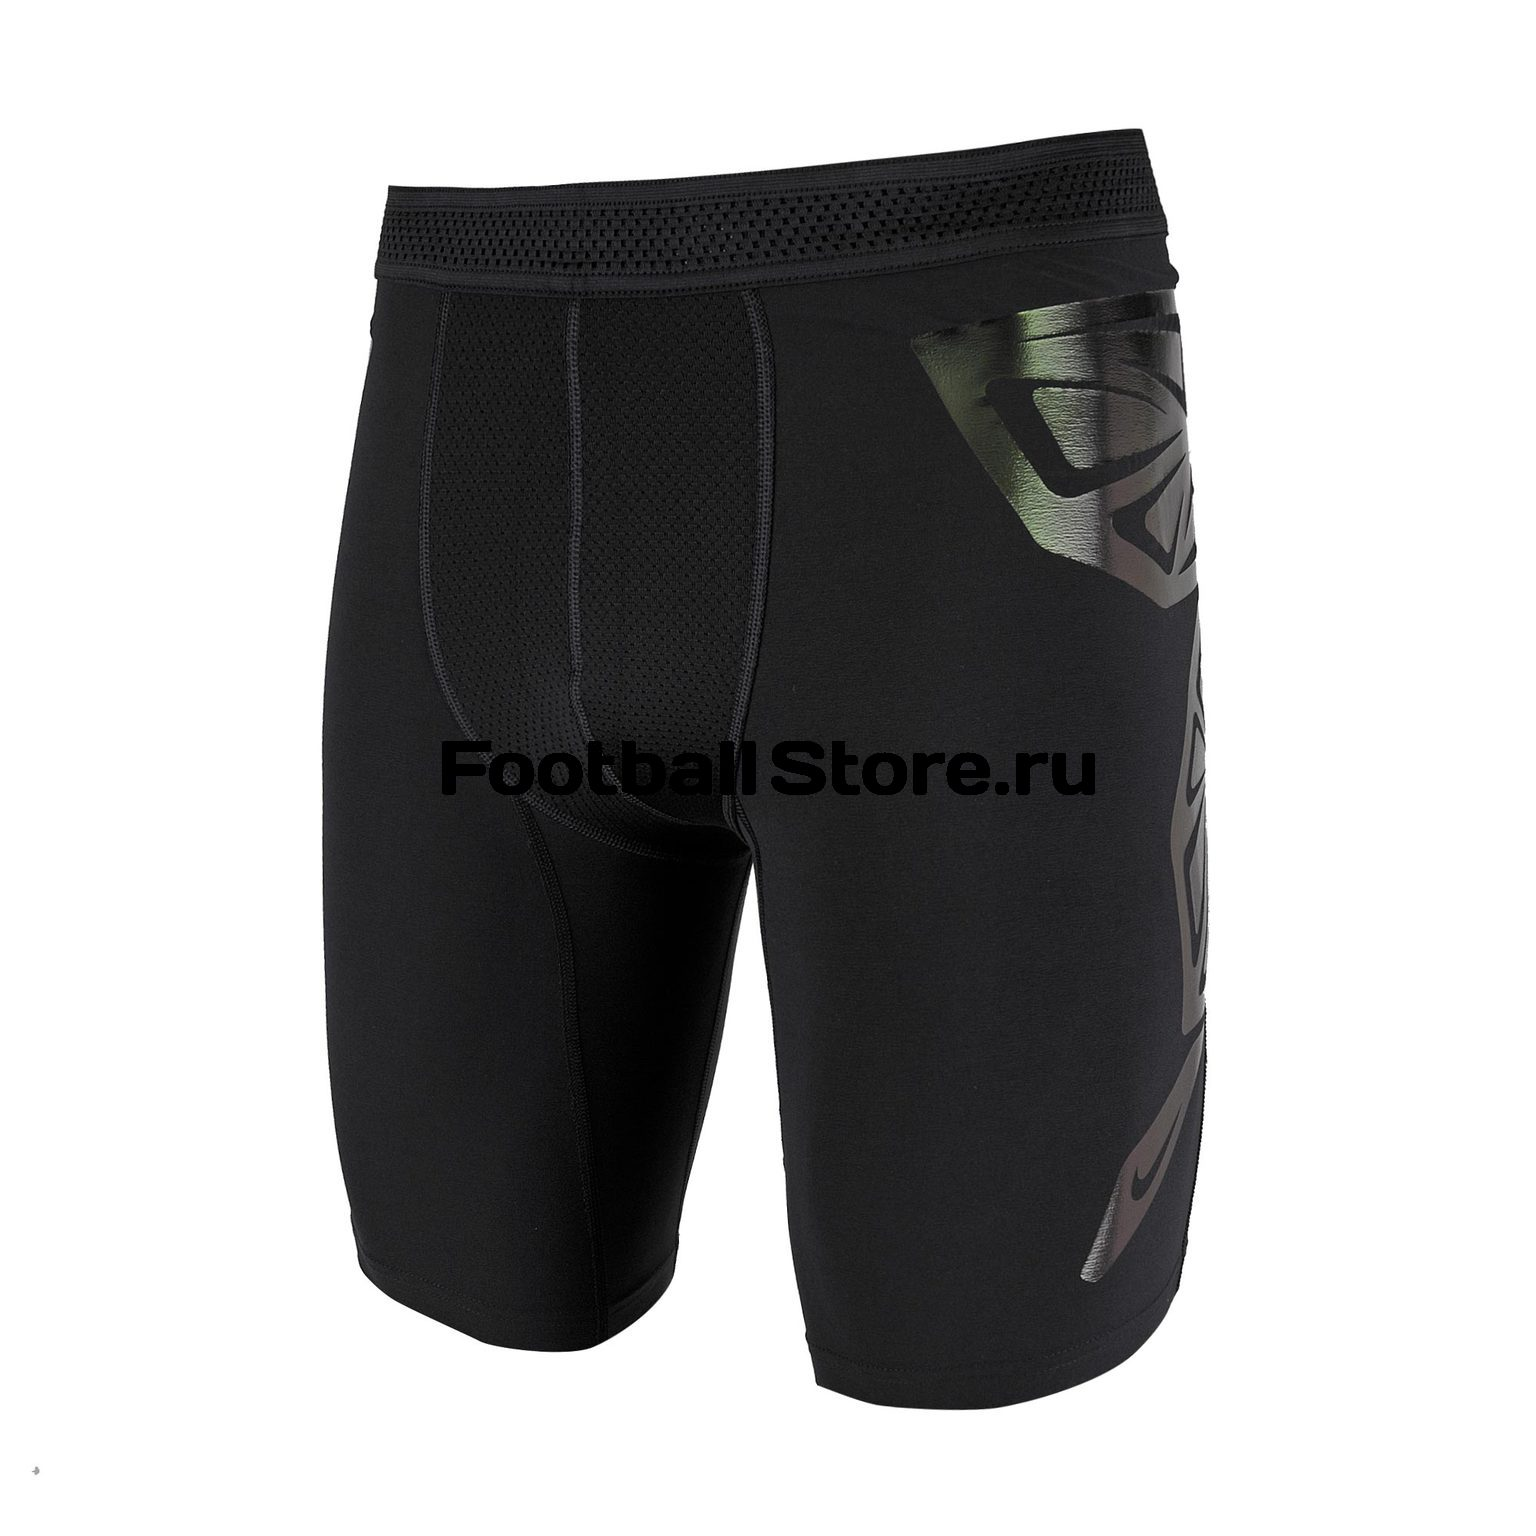 Белье шорты Nike Ultralight Slider Short 818389-010